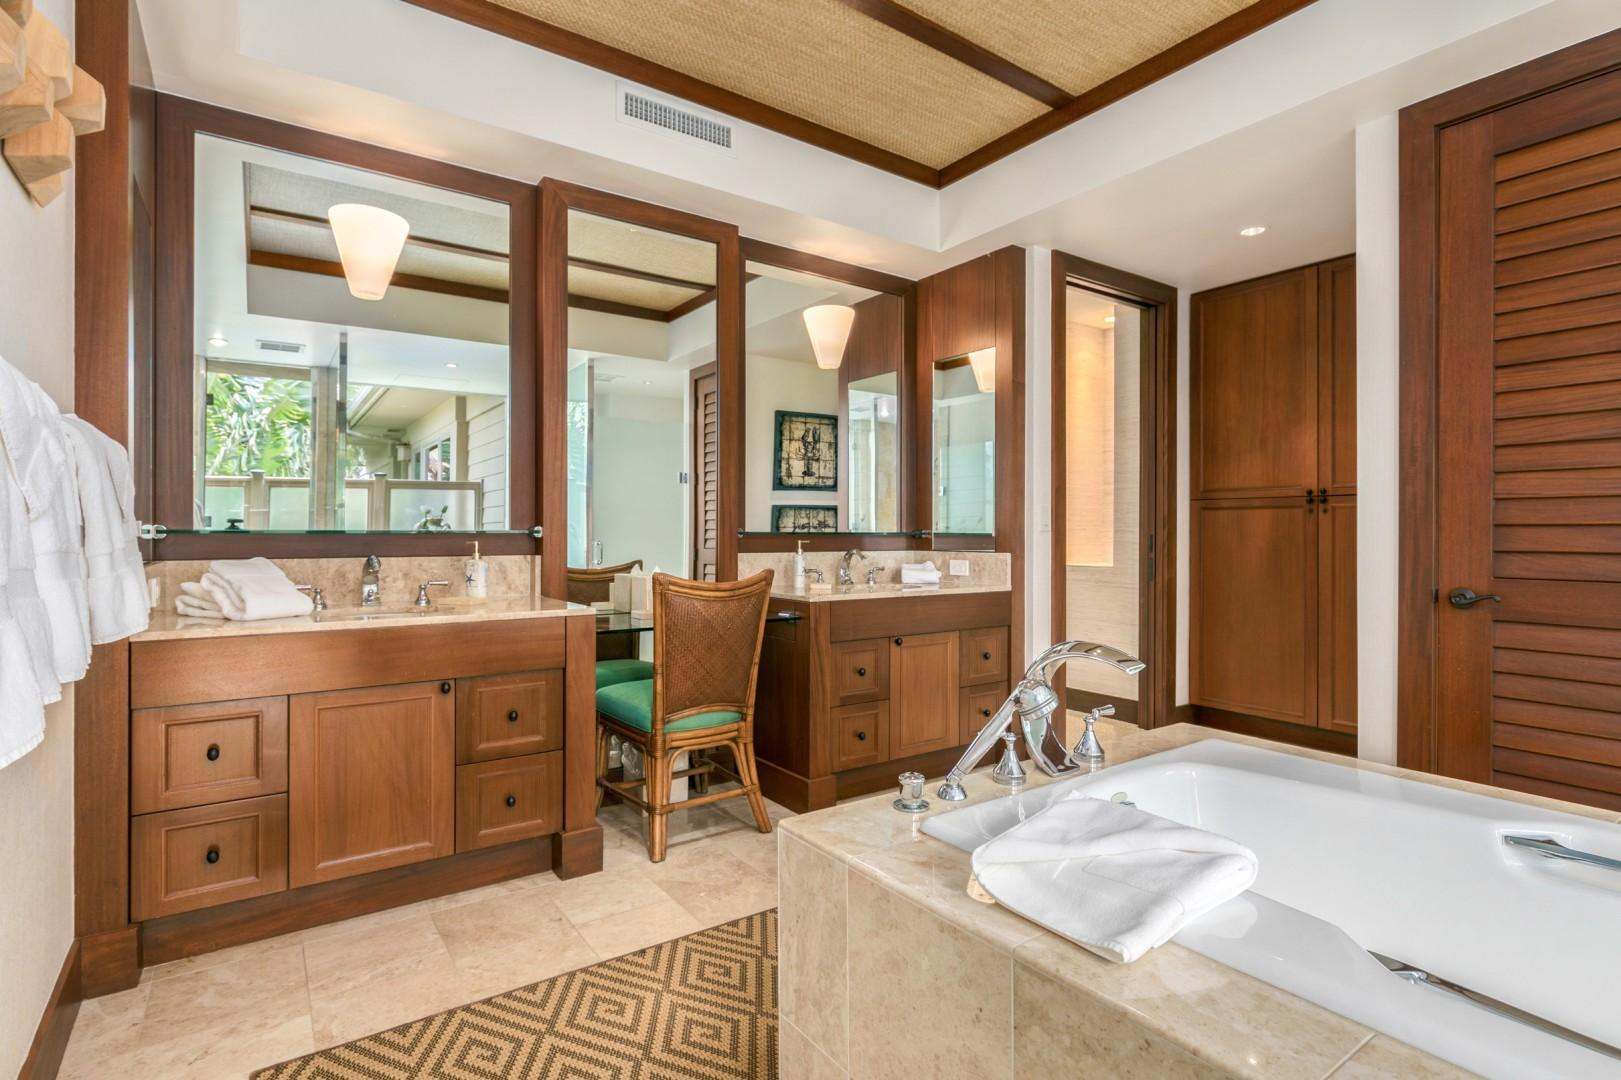 Master Bath with Dual Vanities, Soaking Tub, Walk-In Shower, and Privacy Door to W/C.